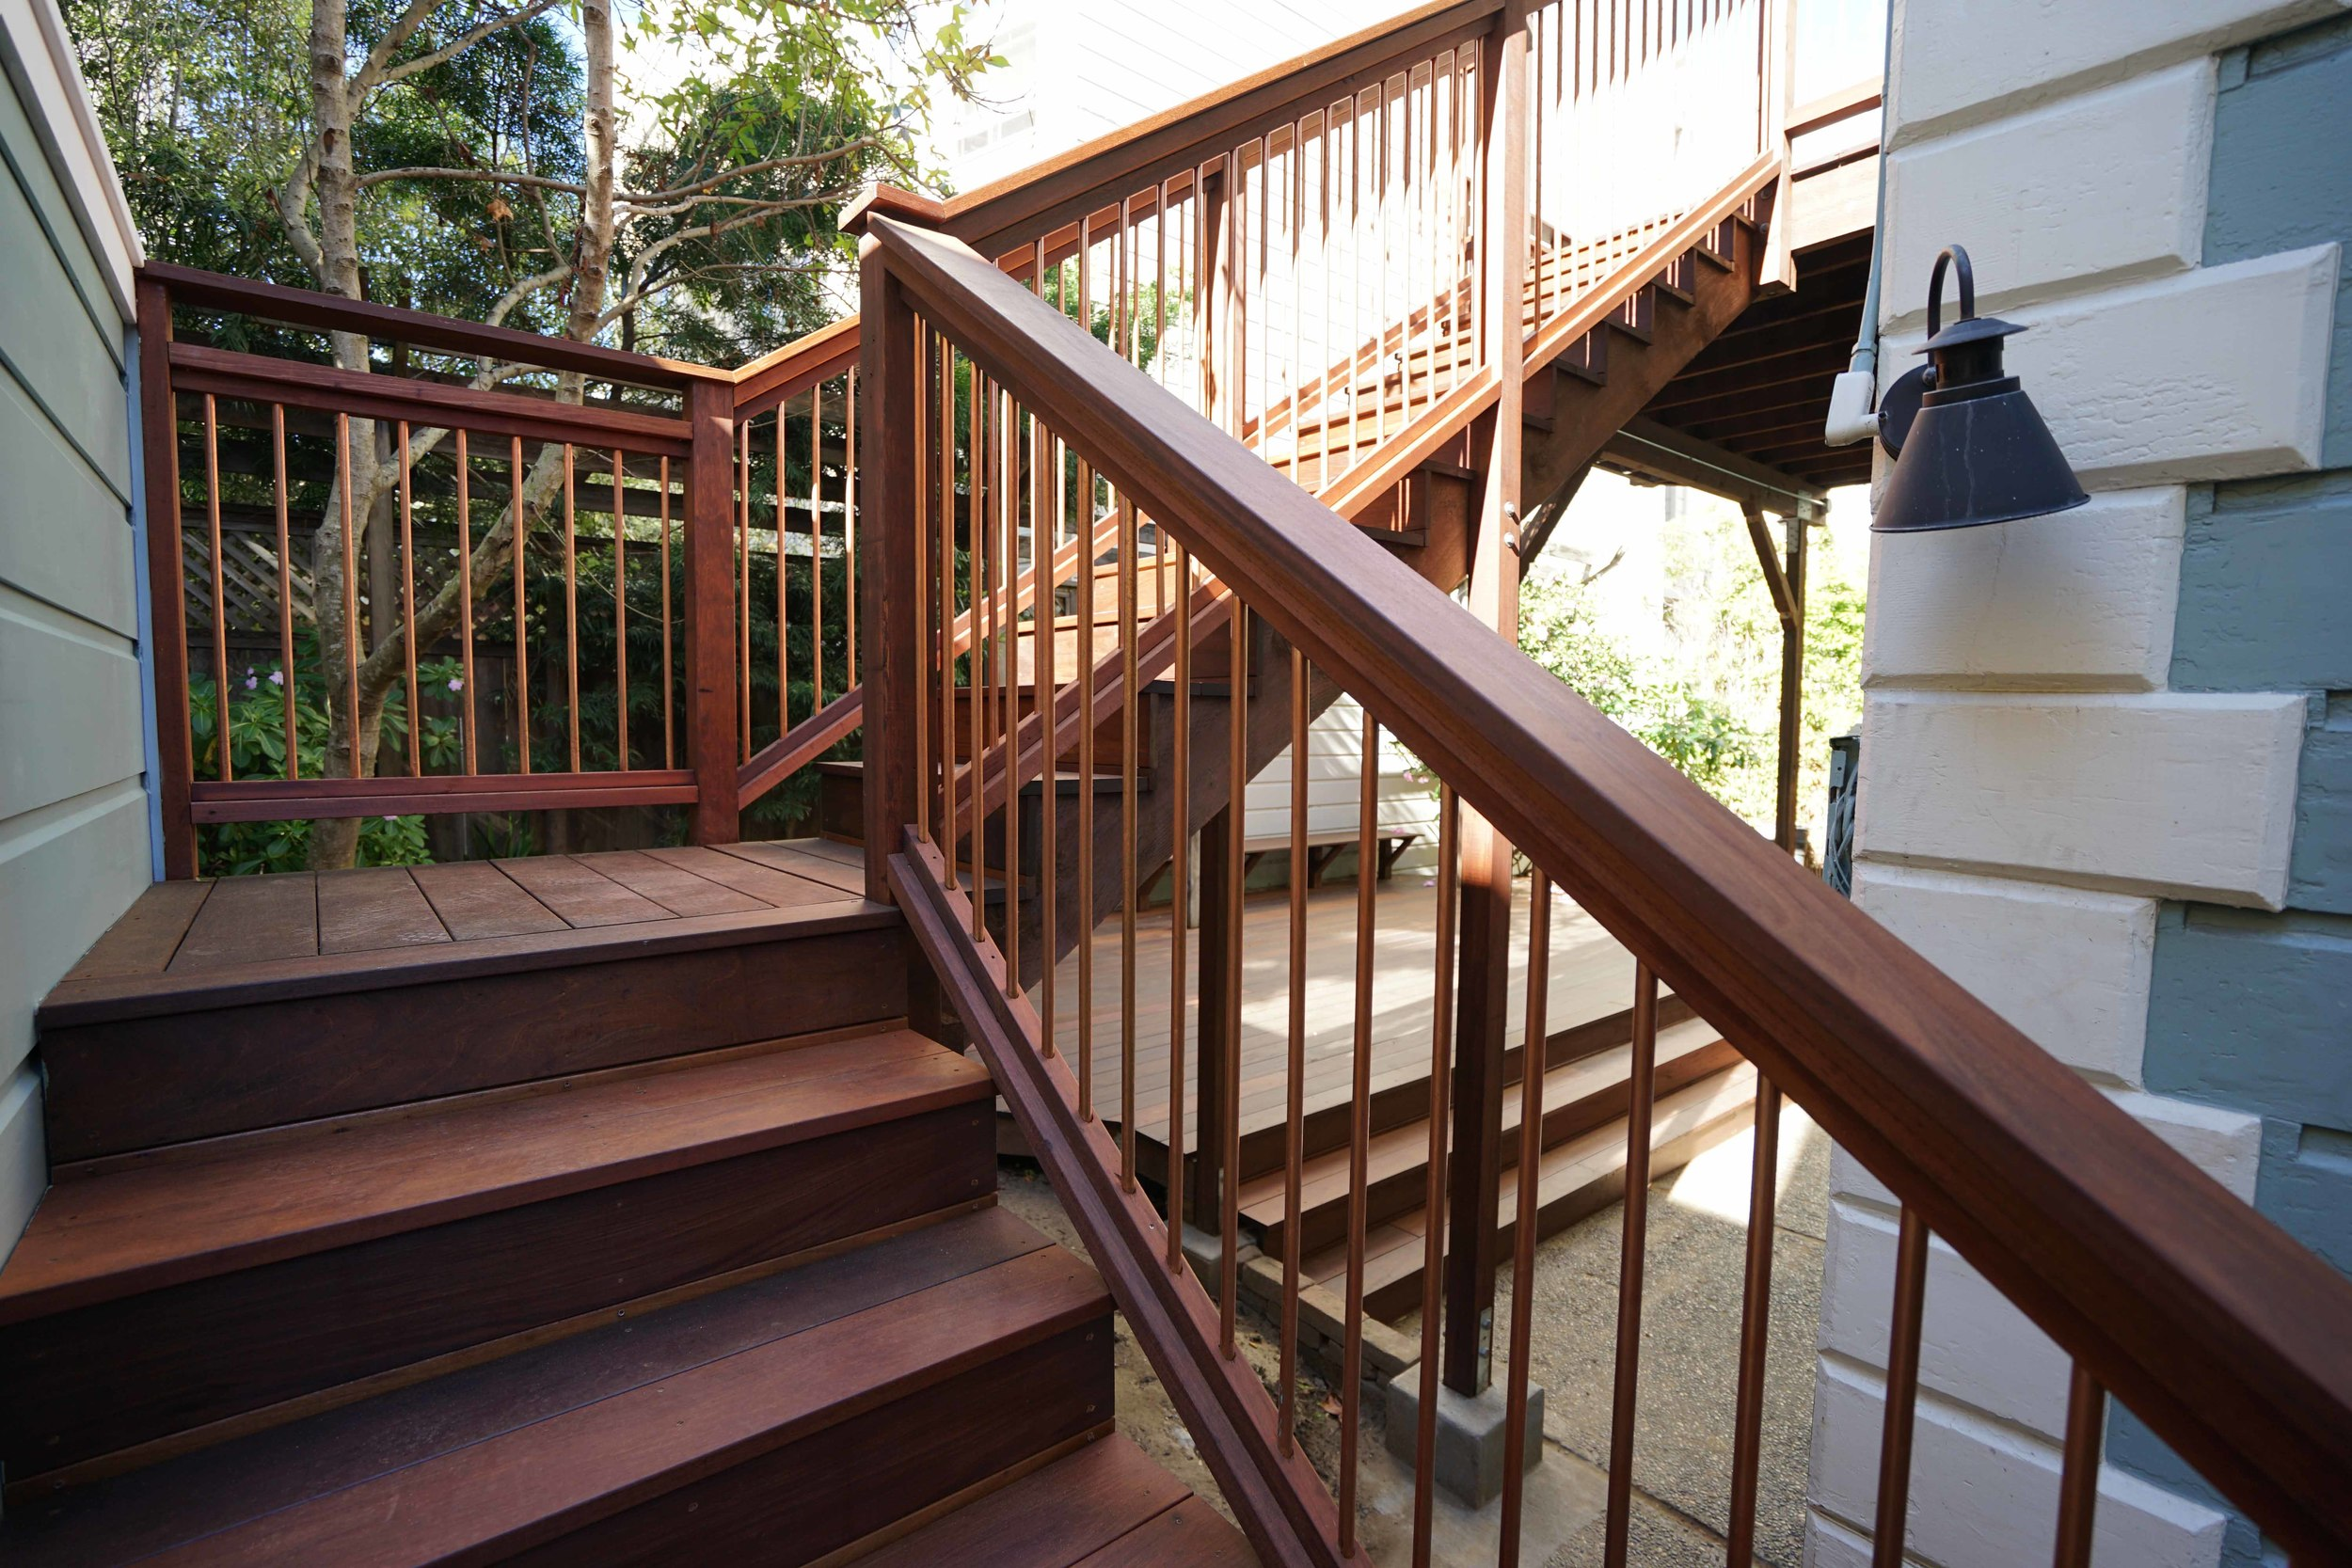 Scott Street Deck with copper balusters completed with variance